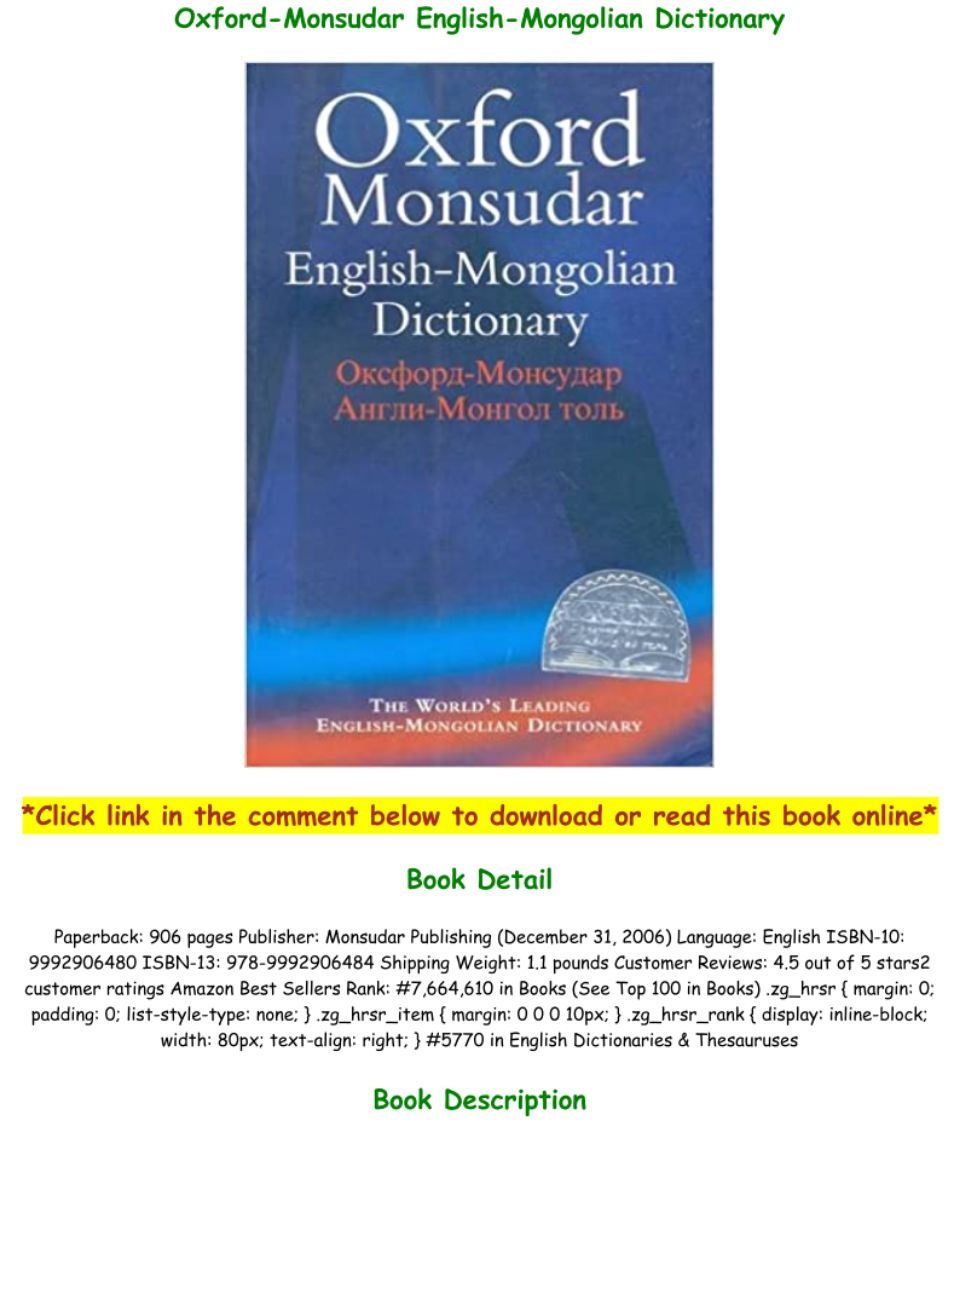 Download Full Oxford Dictionary Pdf